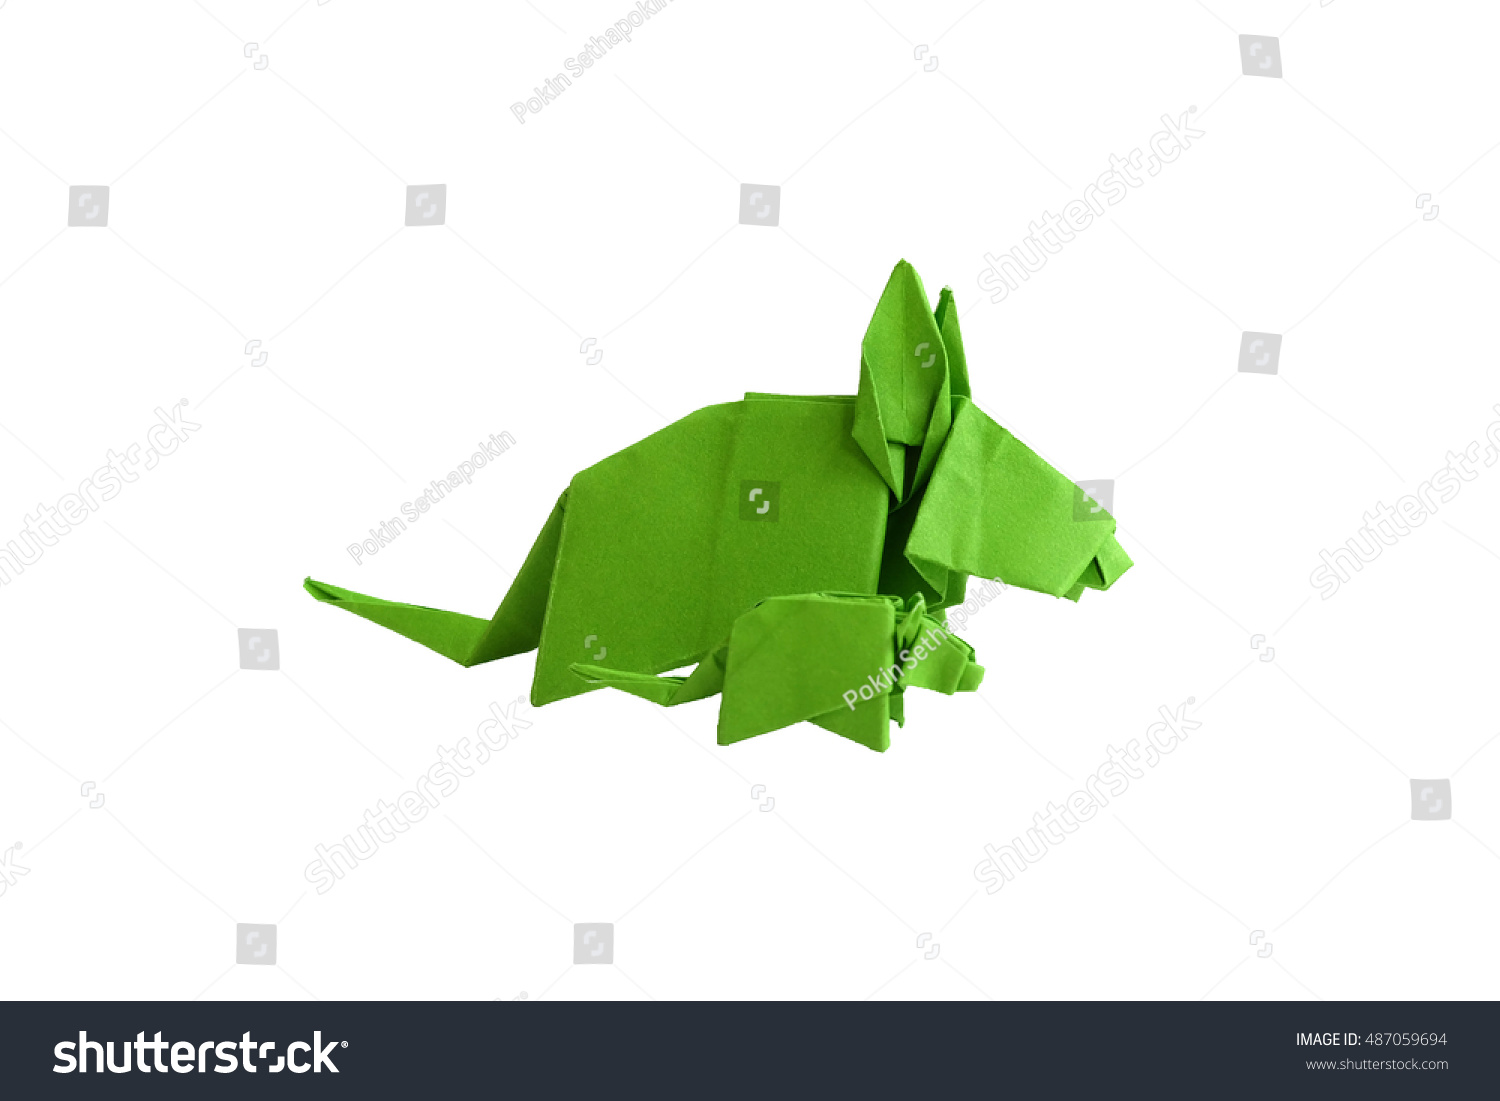 Origami green rat baby rat beautiful stock photo 487059694 origami green rat and baby rat beautiful made by one paper without cutting and tearting on jeuxipadfo Images